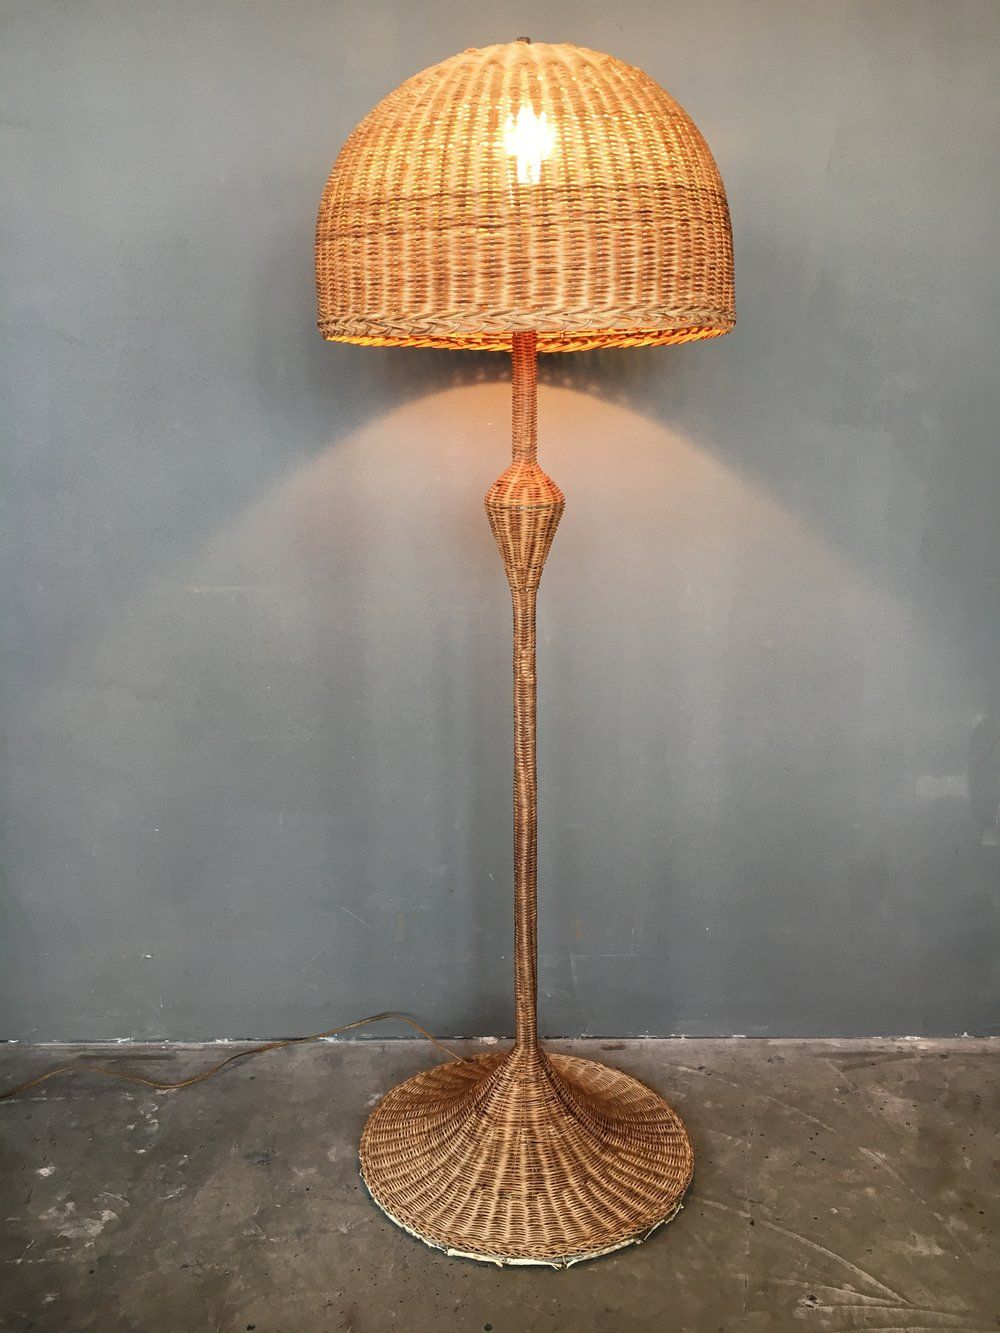 A Vintage Midcentury Modern Boho Chic Floor Lamp Constructed Of Spun Rattan With A Deluxe Sized Mushroom Top Shade A Slim Rattan Floor Lamp Floor Lamp Lamp